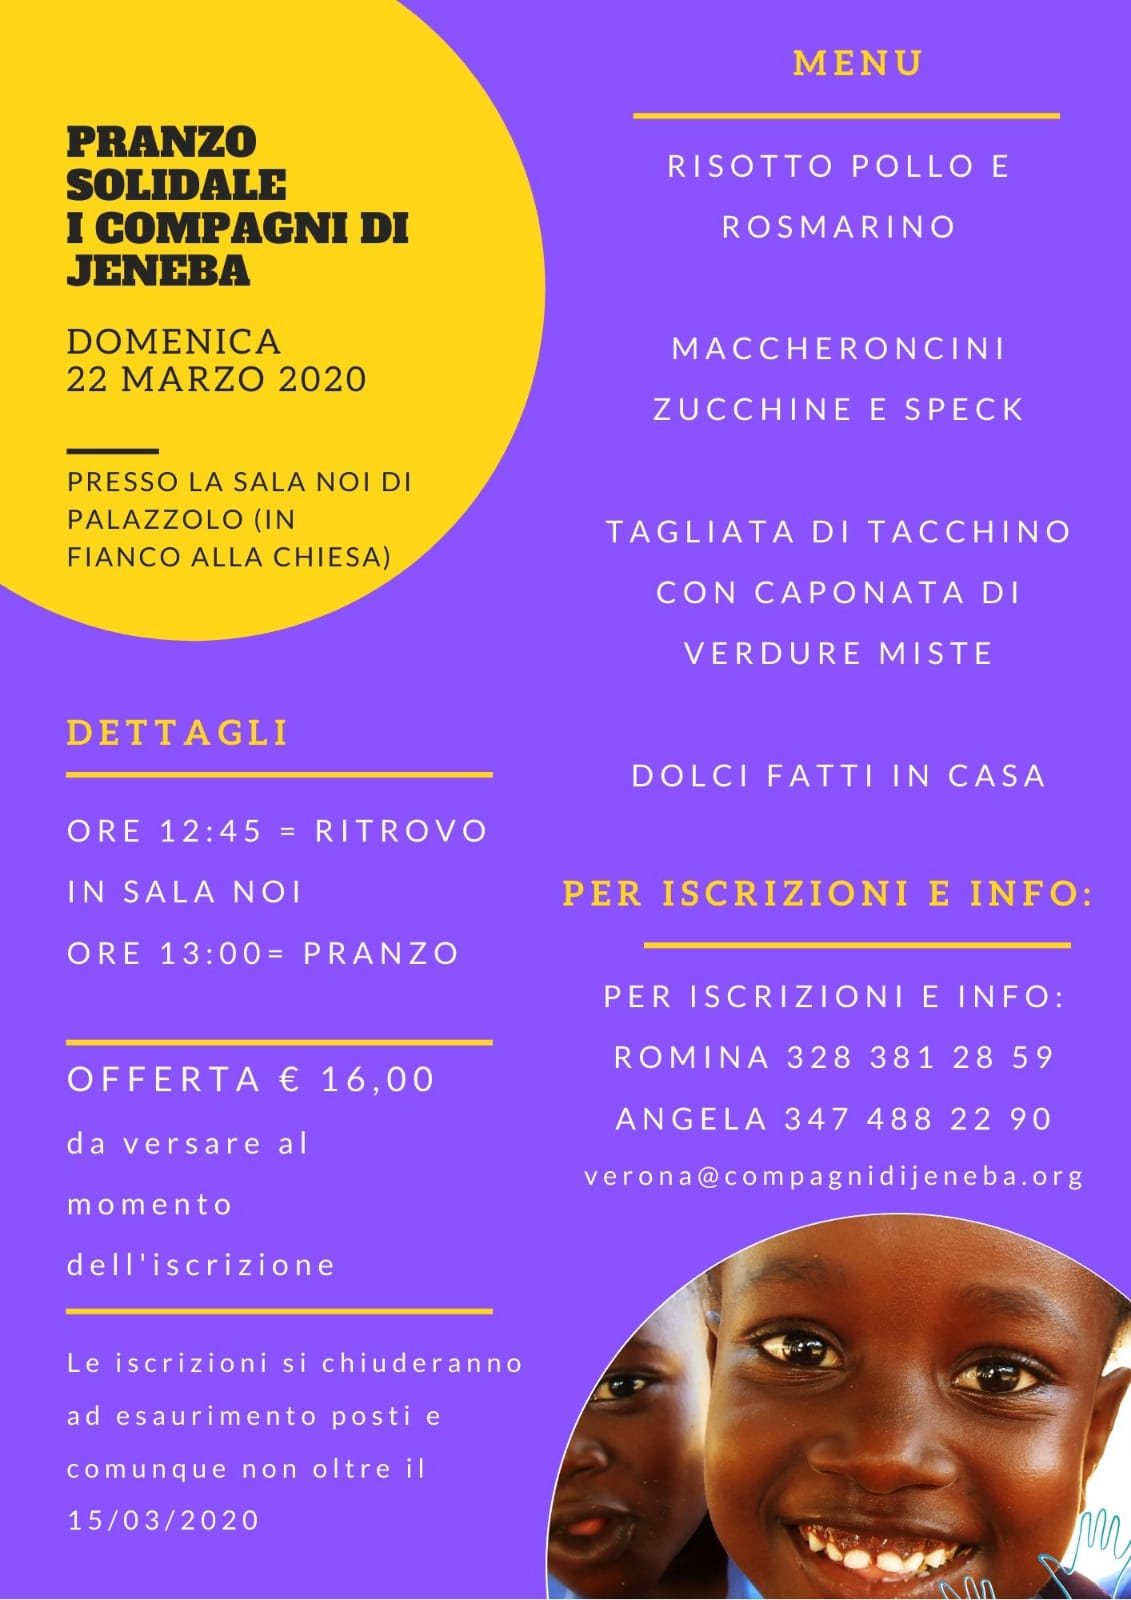 Pranzo Solidale 2020 Verona for Africa